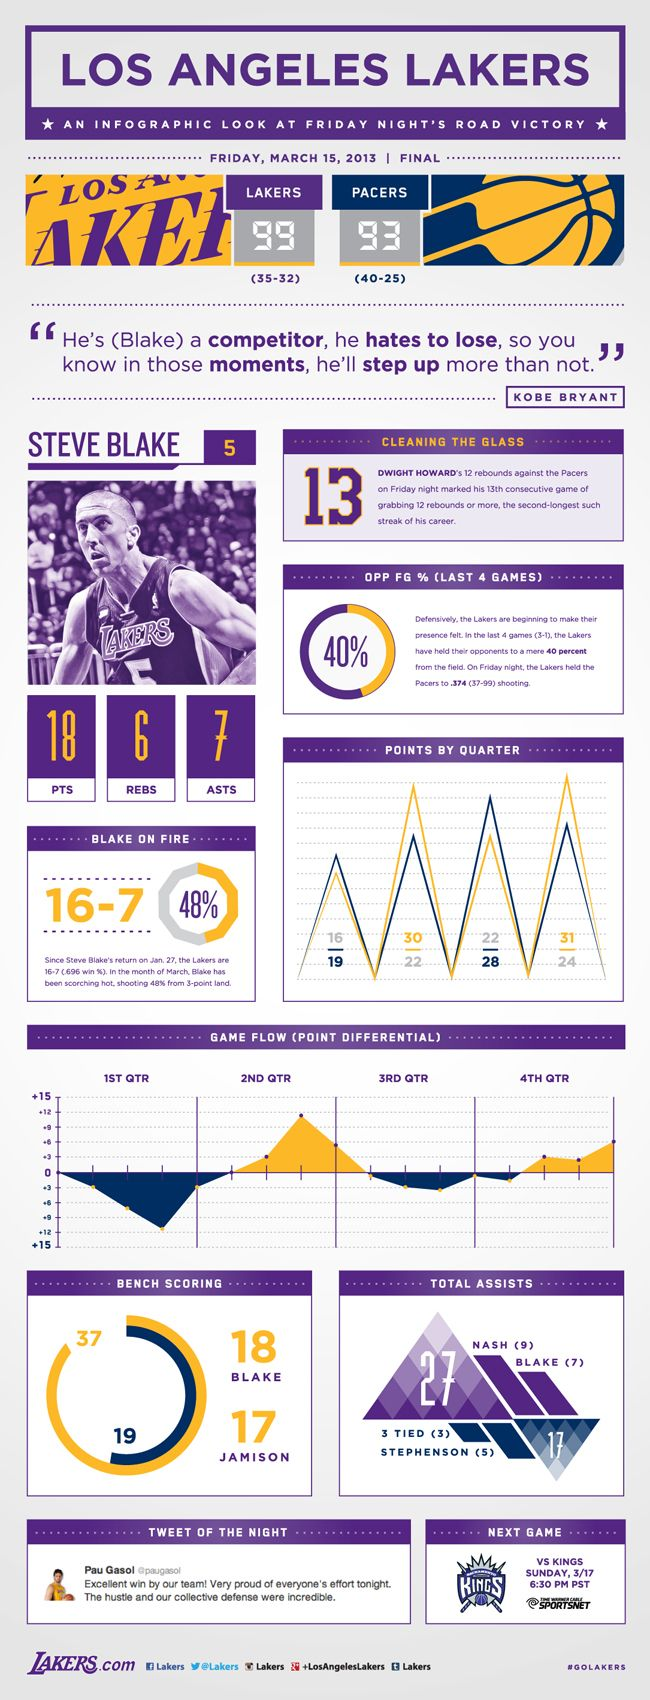 Lakers at Pacers Infographic | THE OFFICIAL SITE OF THE LOS ANGELES LAKERS